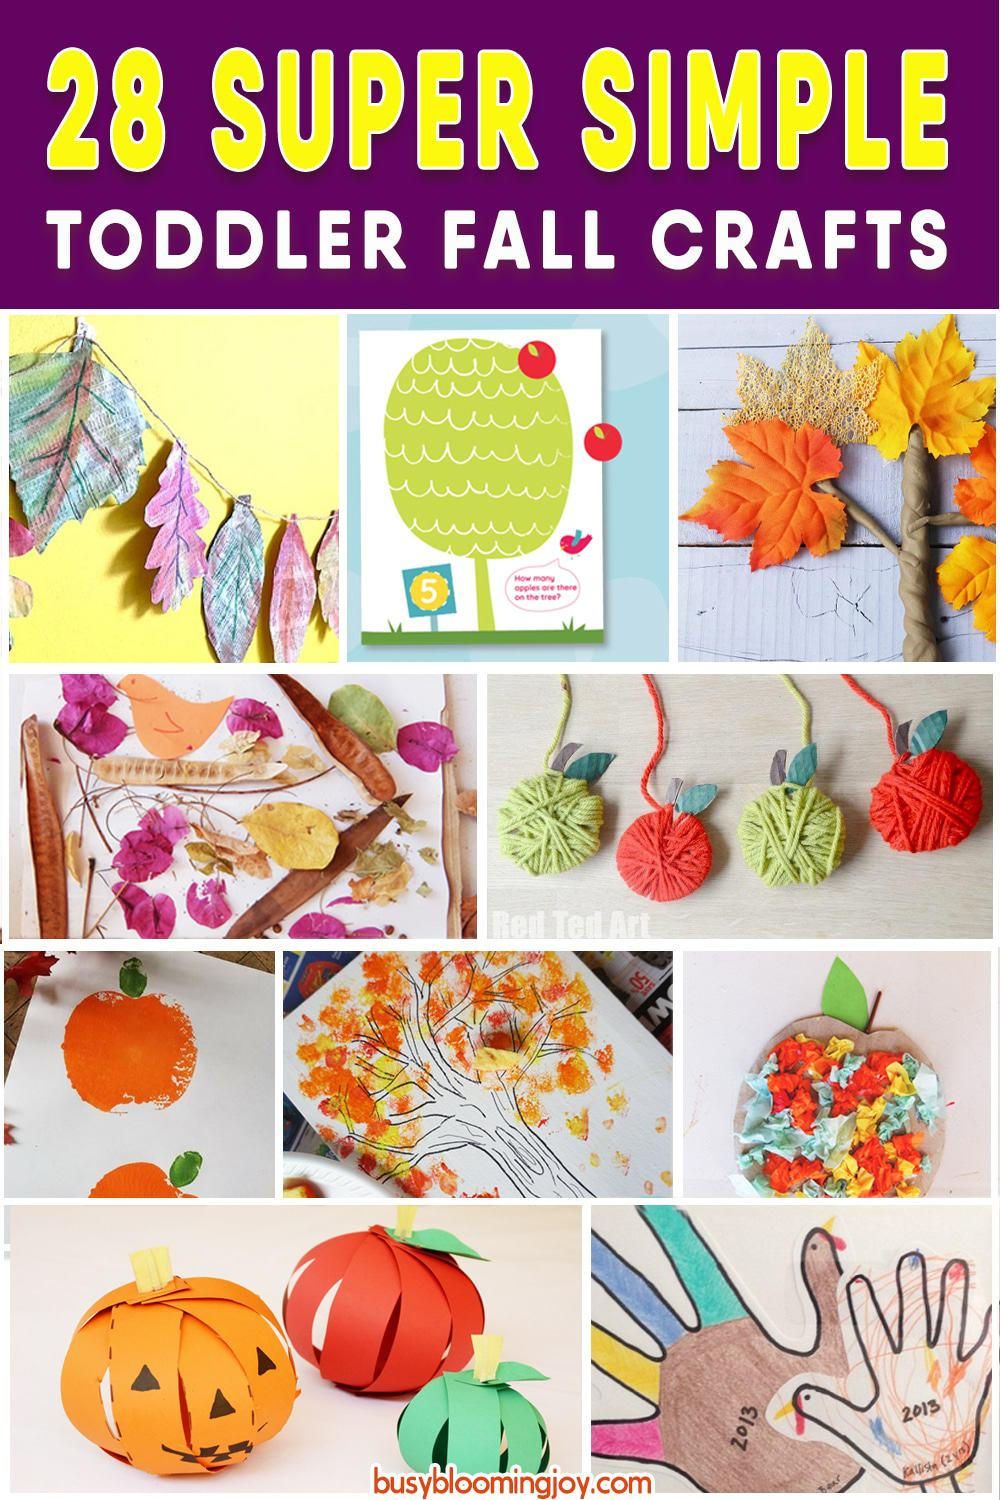 Fall crafts for toddlers this Autumn! Apple crafts, leaf crafts, paper plate crafts, tree crafts, pumpkin crafts - everything fall and Autumn for toddlers or preschoolers